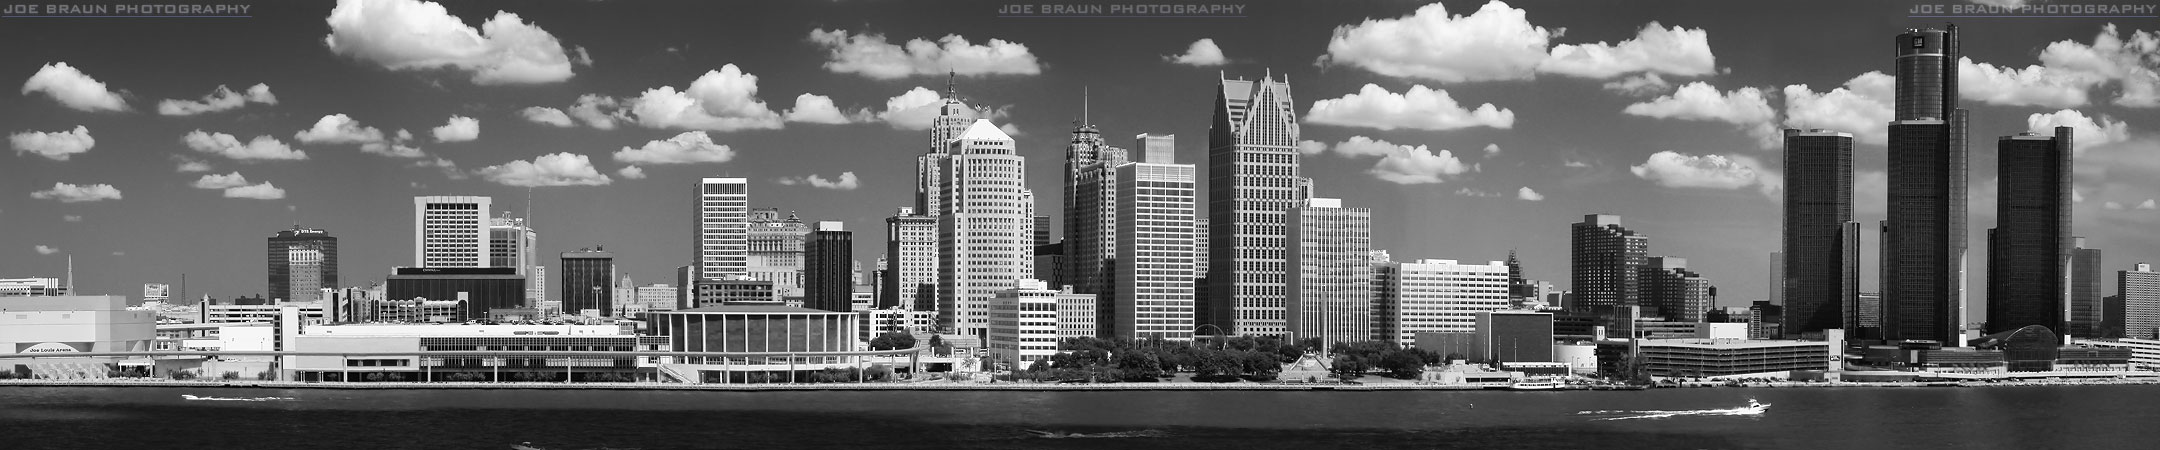 Joe Braun Photography - Duality of the D